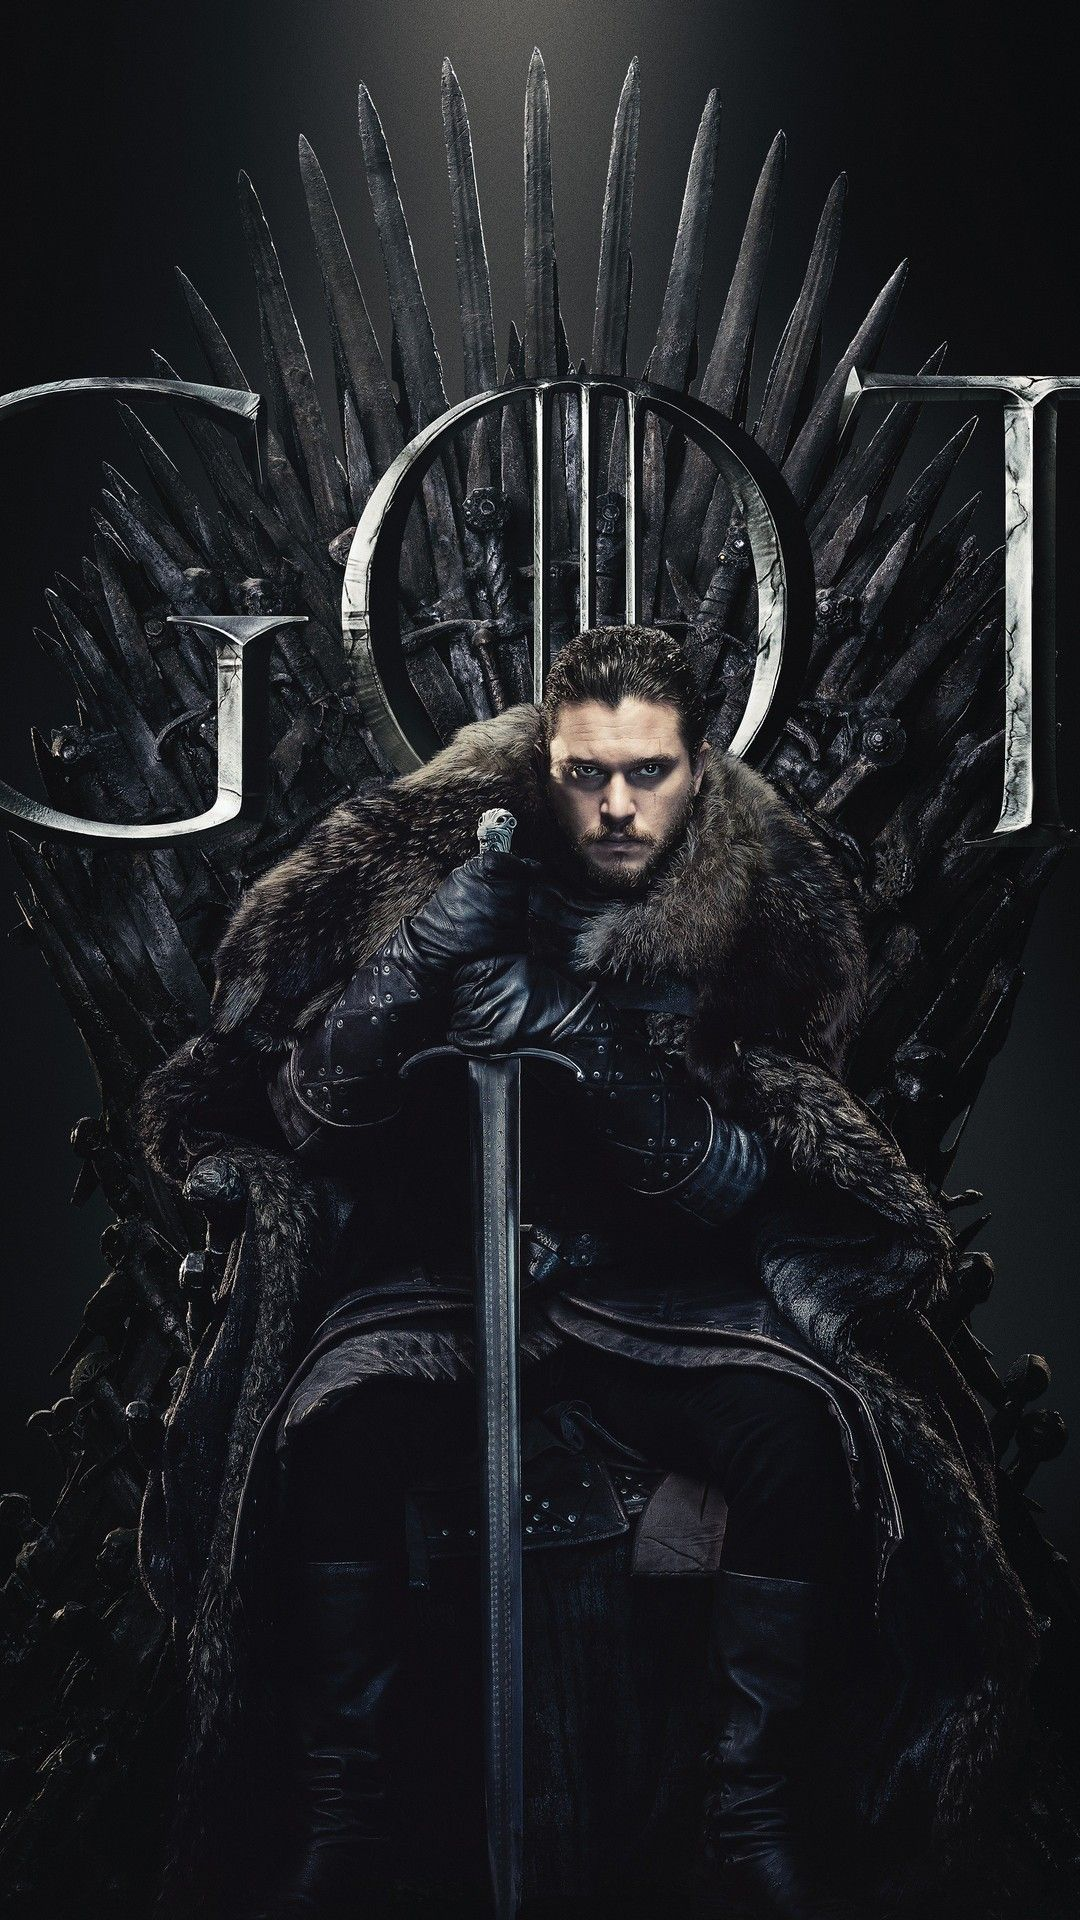 Game Of Thrones 2019 Iphone Wallpaper Game Of Thrones Art Wallpaper Pictures